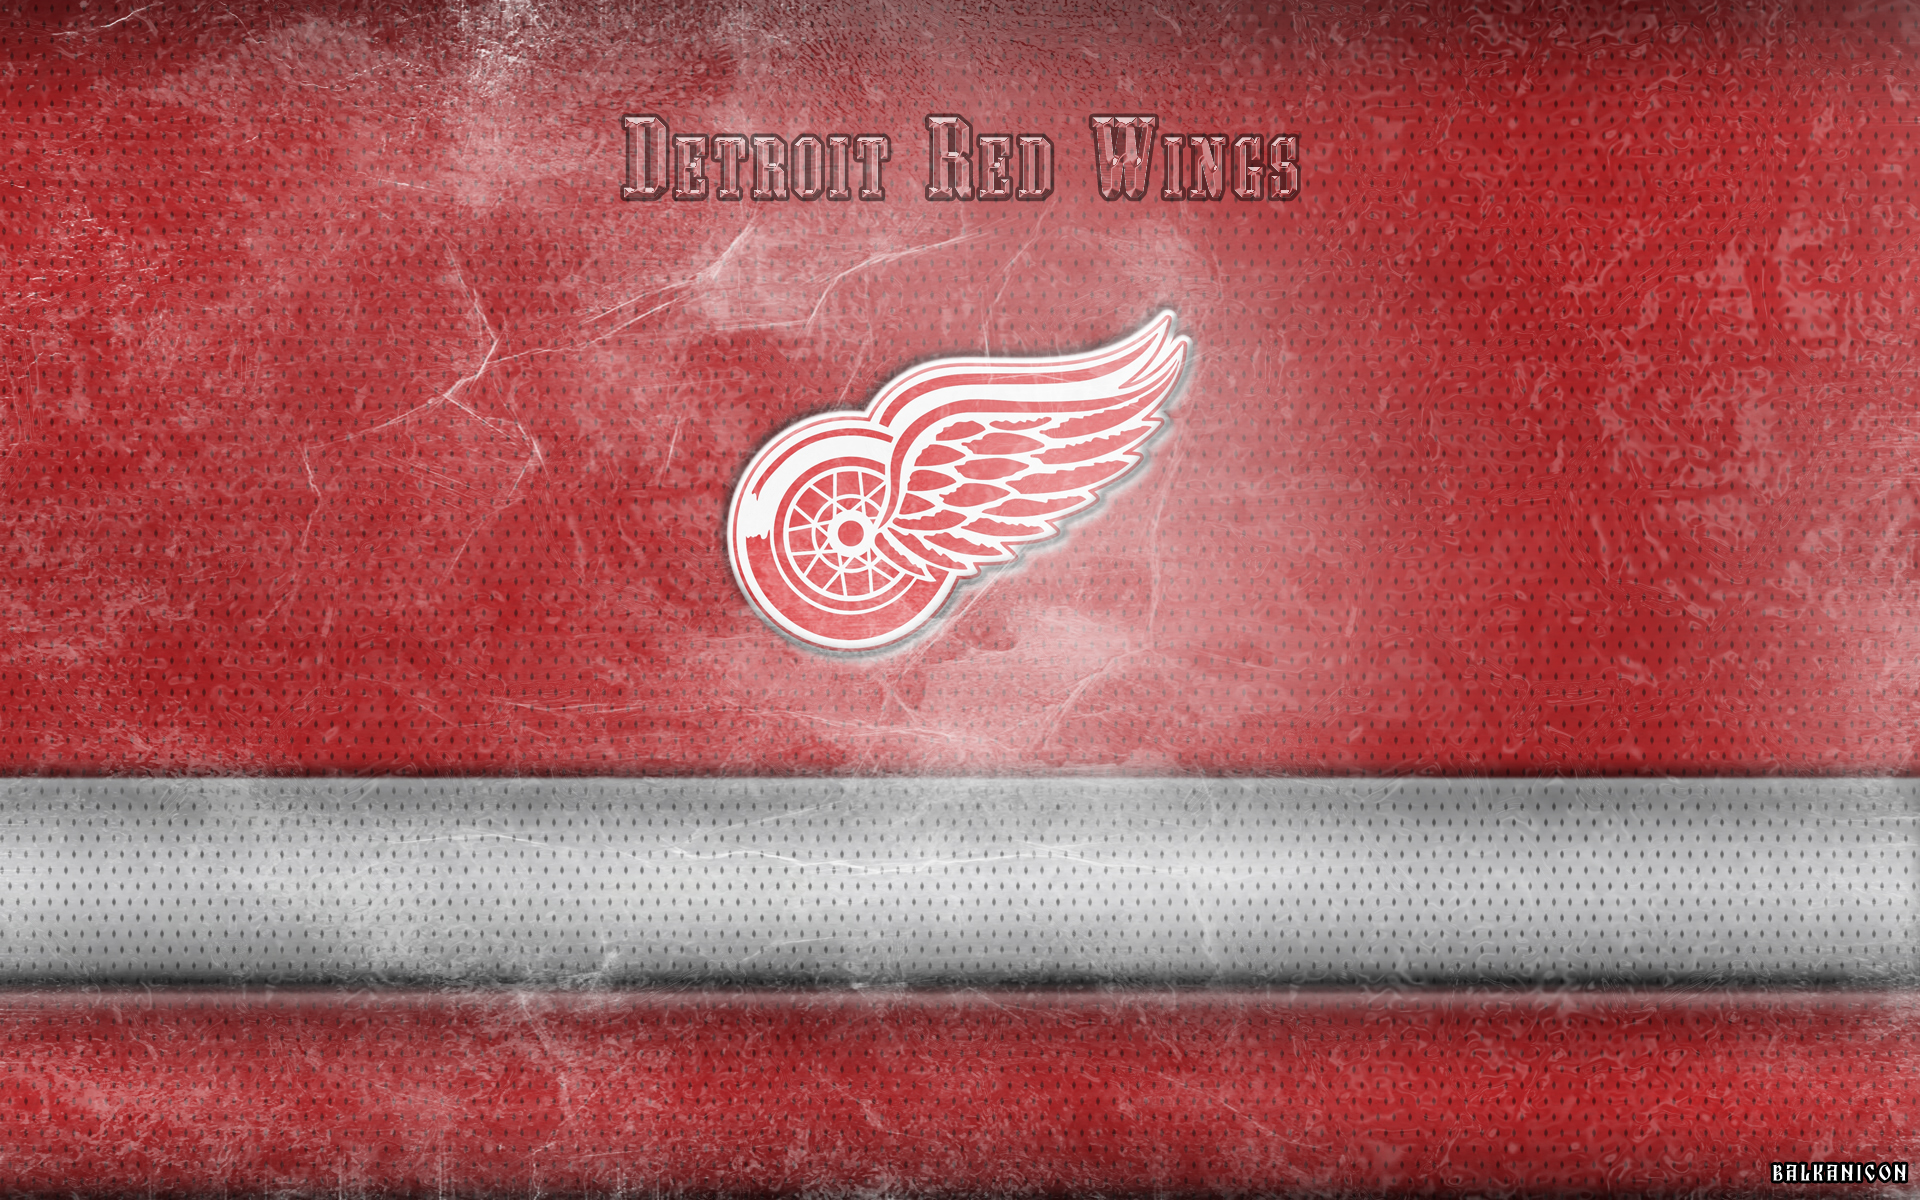 red wings wallpaper border - photo #26